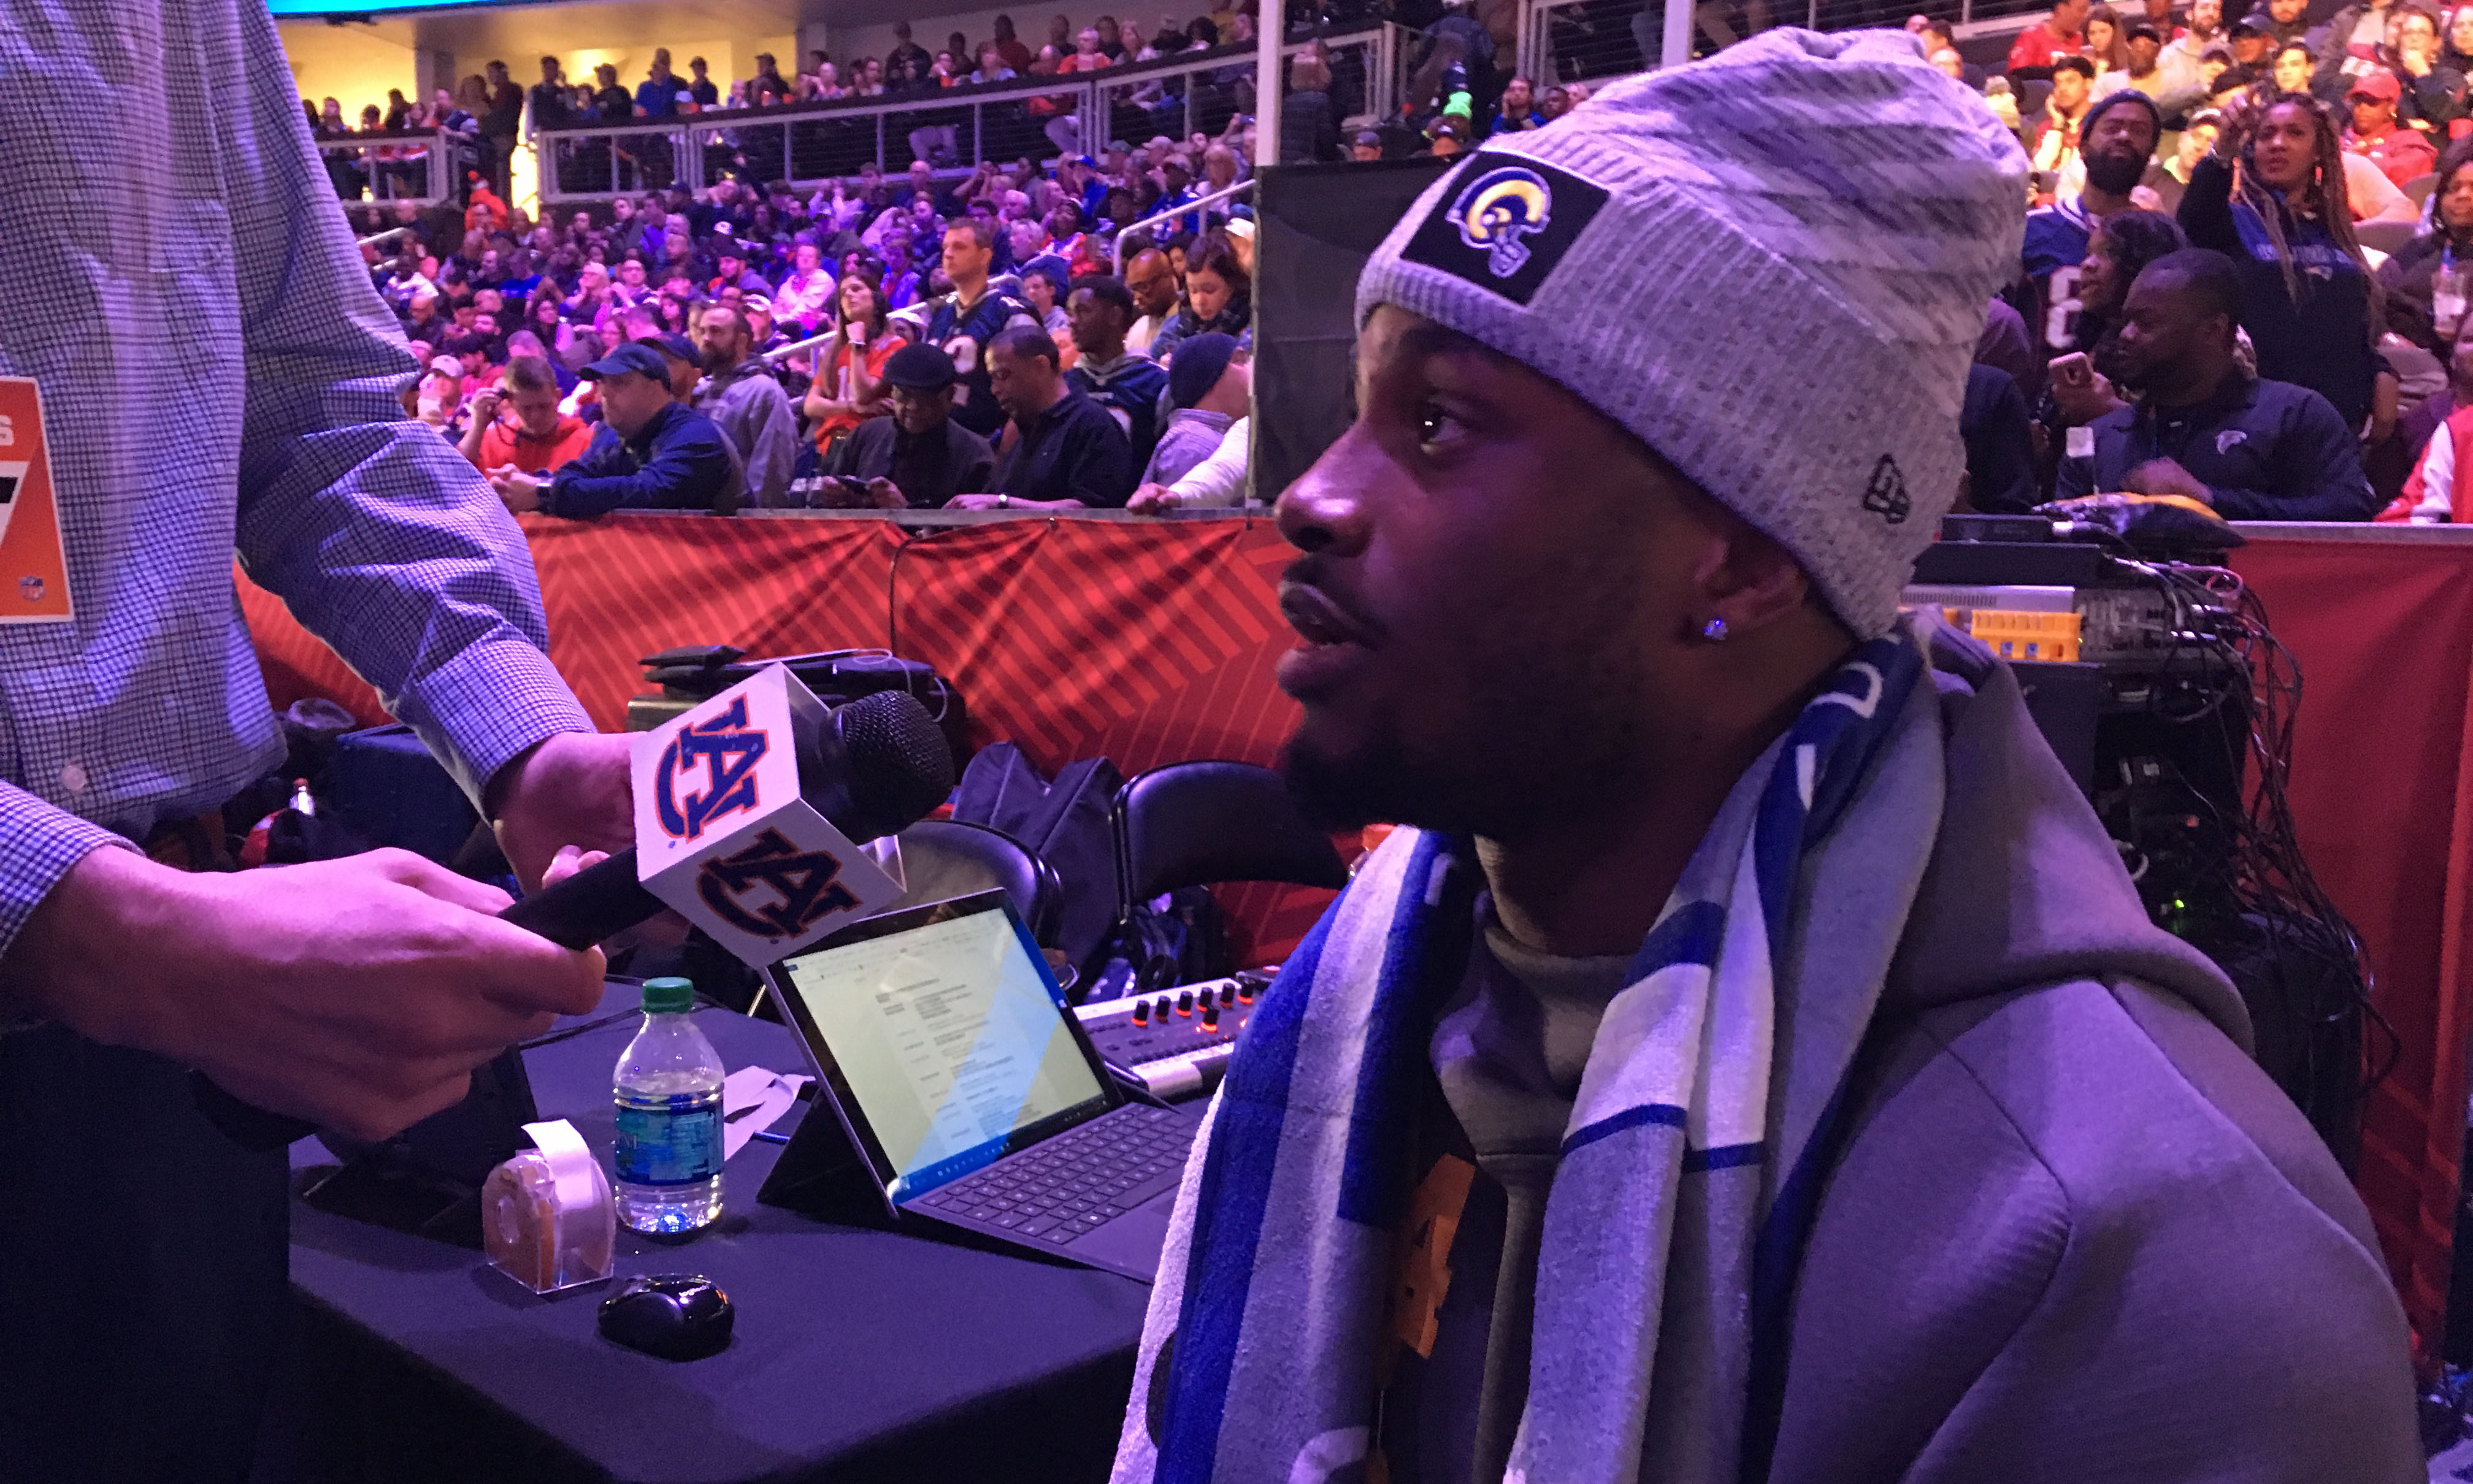 Former Good Counsel standout, current Los Angeles Ram, Blake Countess at Super Bowl media day. Capital News Service photo by James Crabtree-Hannigan